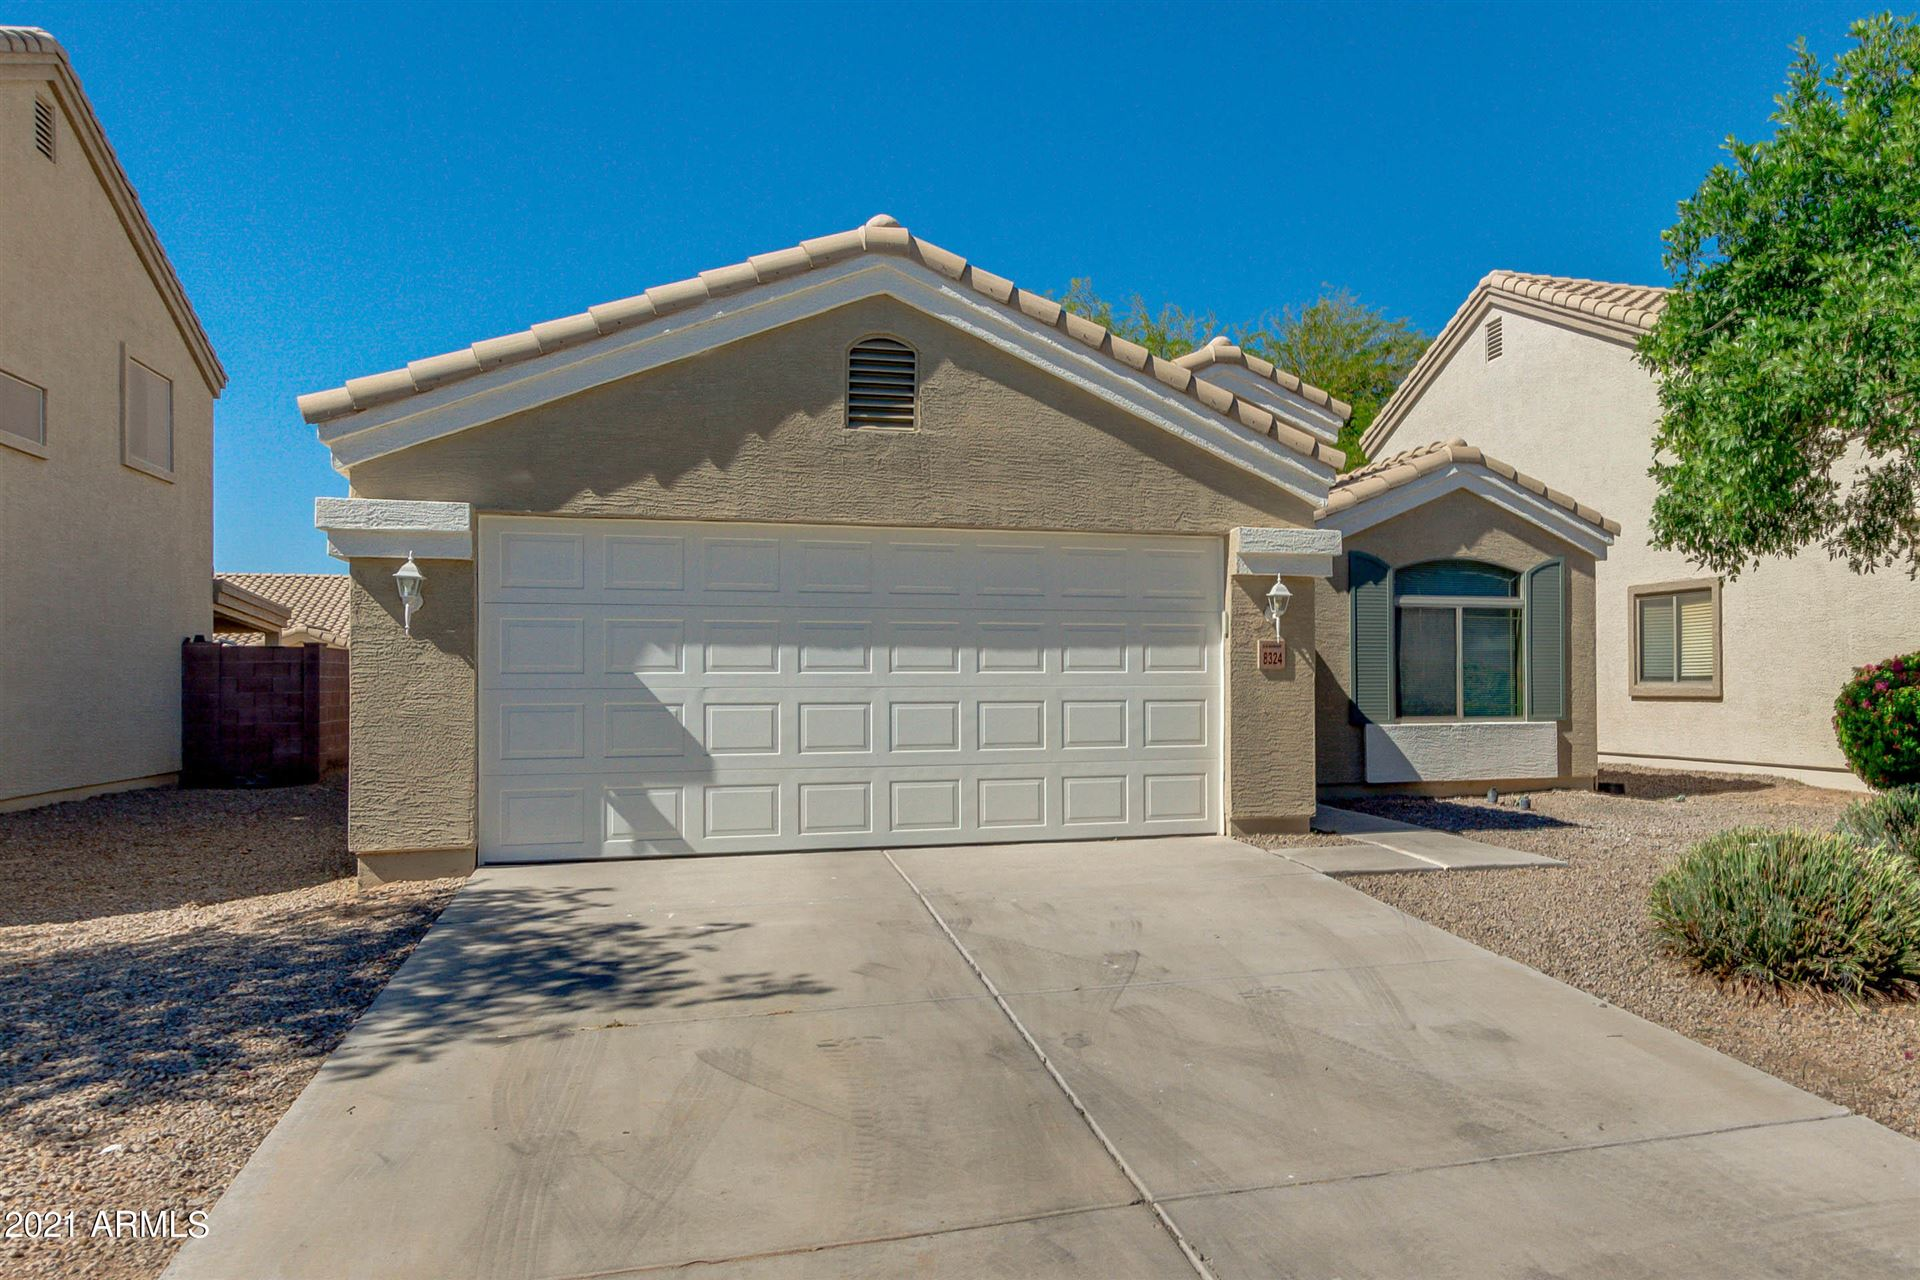 Photo of 8324 W CROWN KING Road, Tolleson, AZ 85353 (MLS # 6226297)